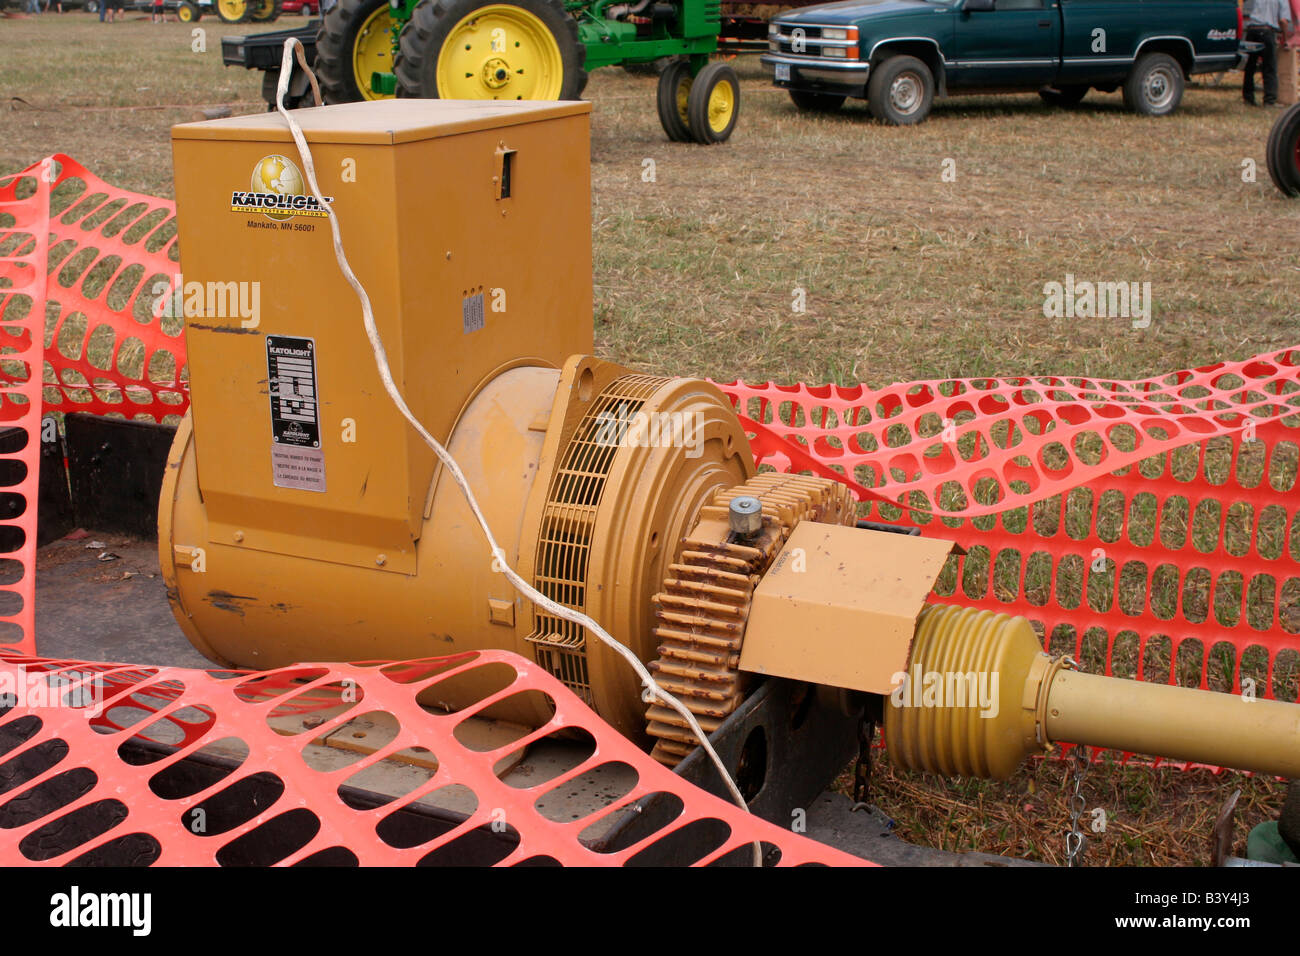 Electrical Shaft Drive Tractor : Large power take off pto shaft electric generator driven